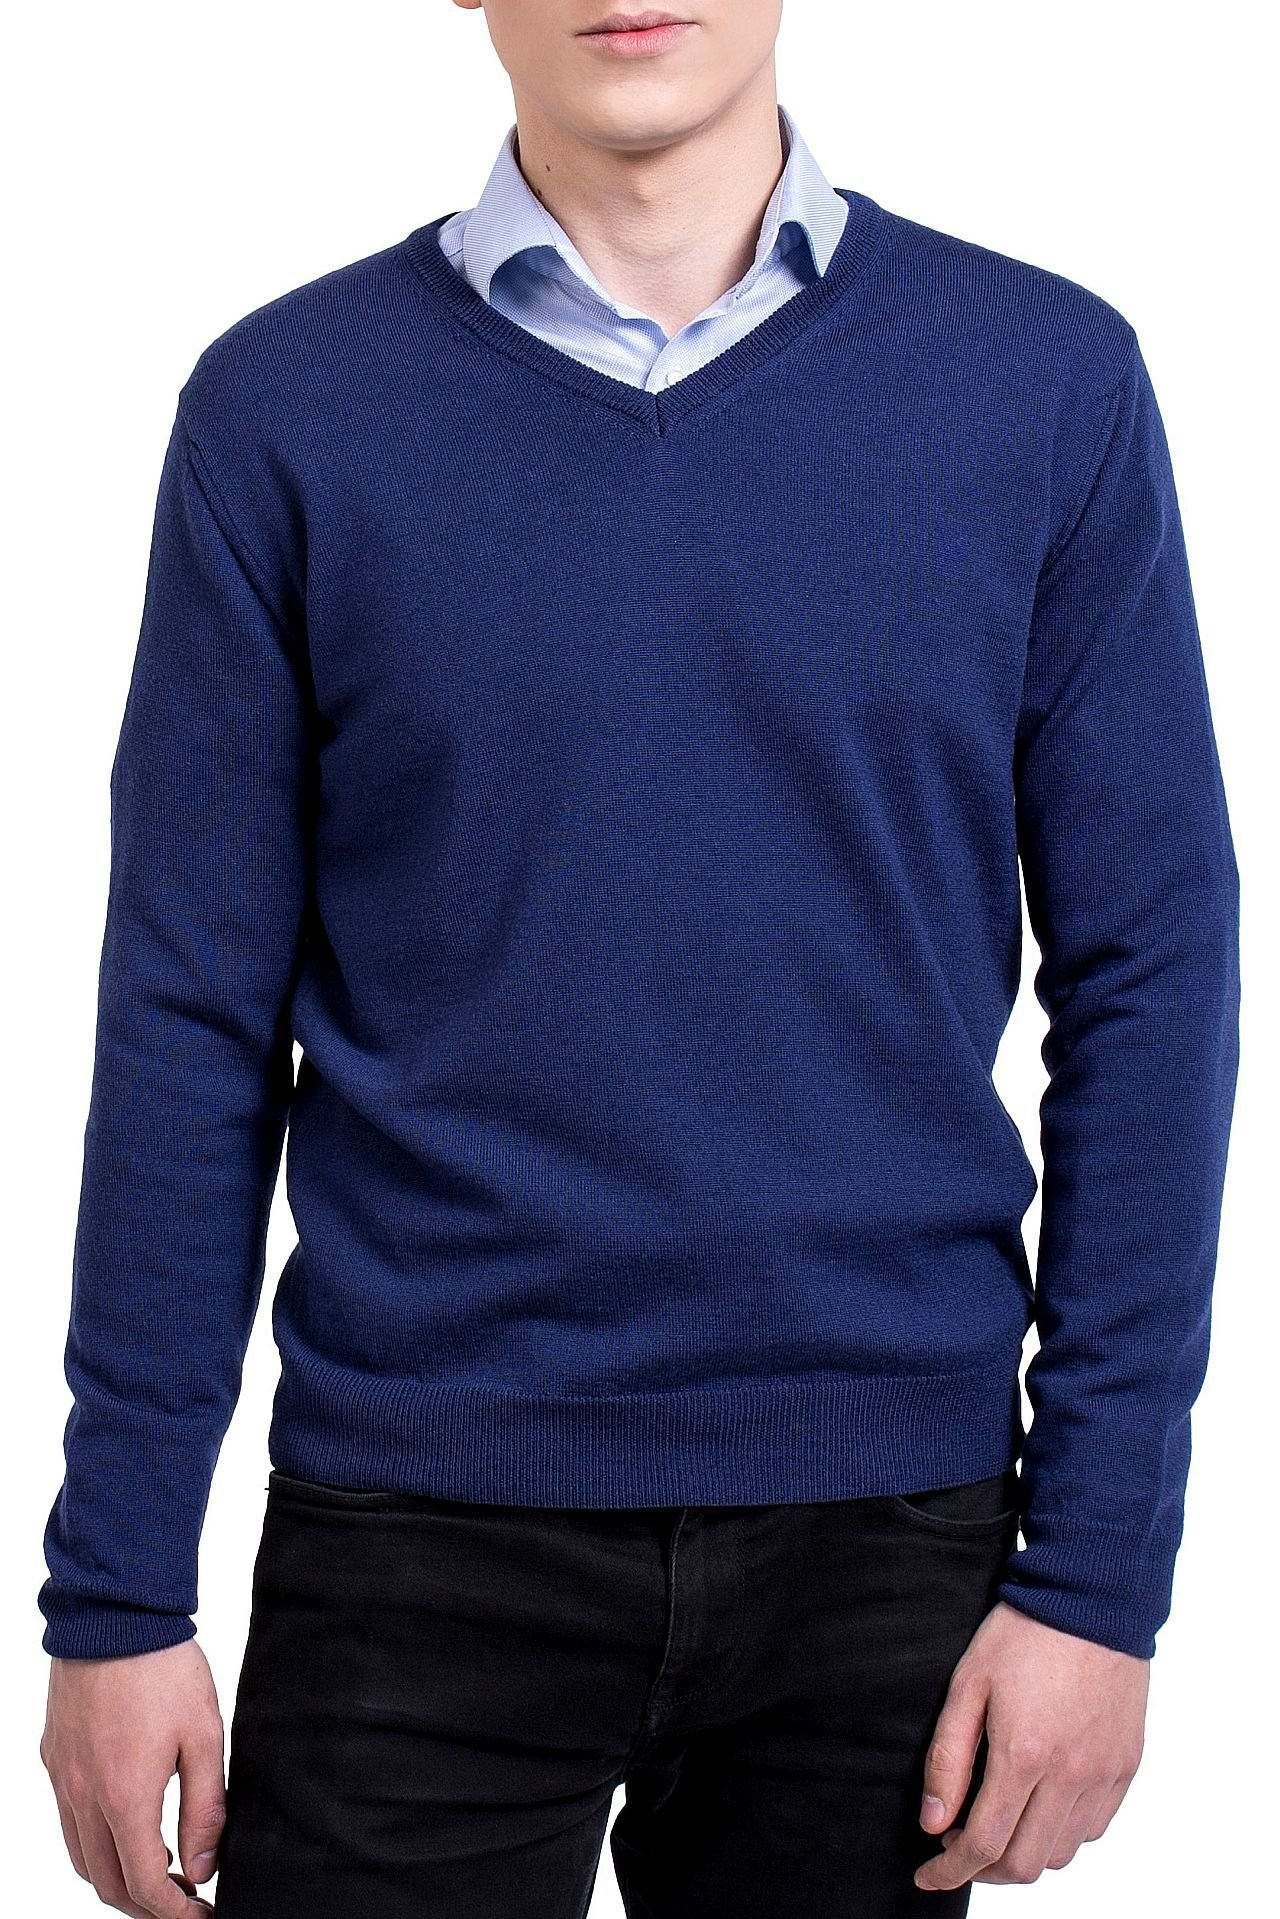 KNITTONS Men's 100% Merino Wool Extra Fine Classic V-Neck Sweater Long Sleeve Pullover (Large, Navy Blue)